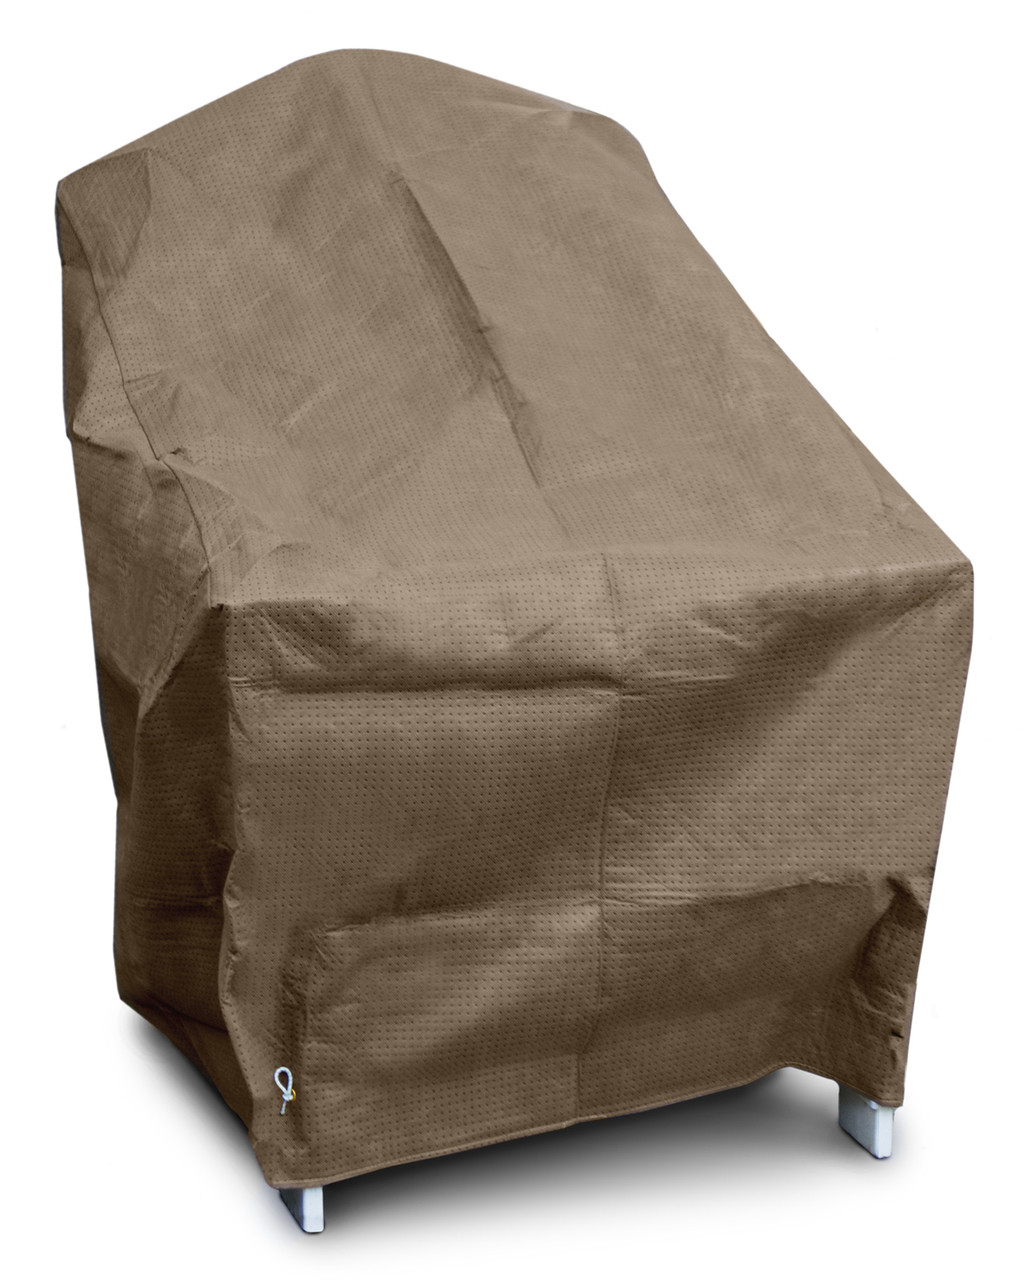 Adirondack Chair Cover Outdoor Furniture Covers